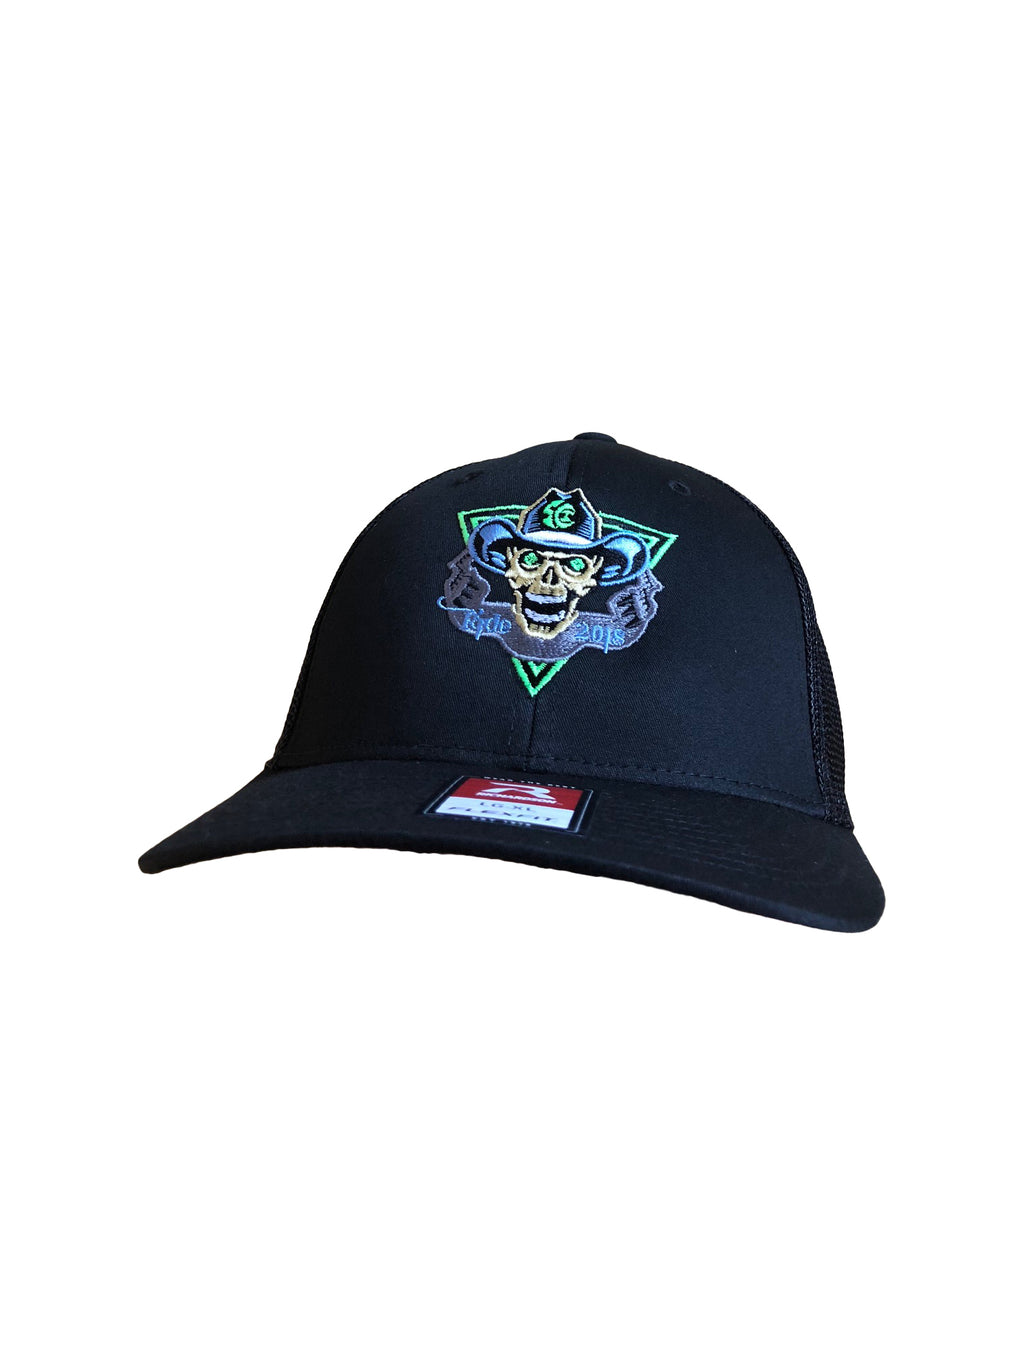 2018 To Hell U Ride Richardson Trucker Hat 110 Black front with Black Mesh back Flex Fit Hat Front